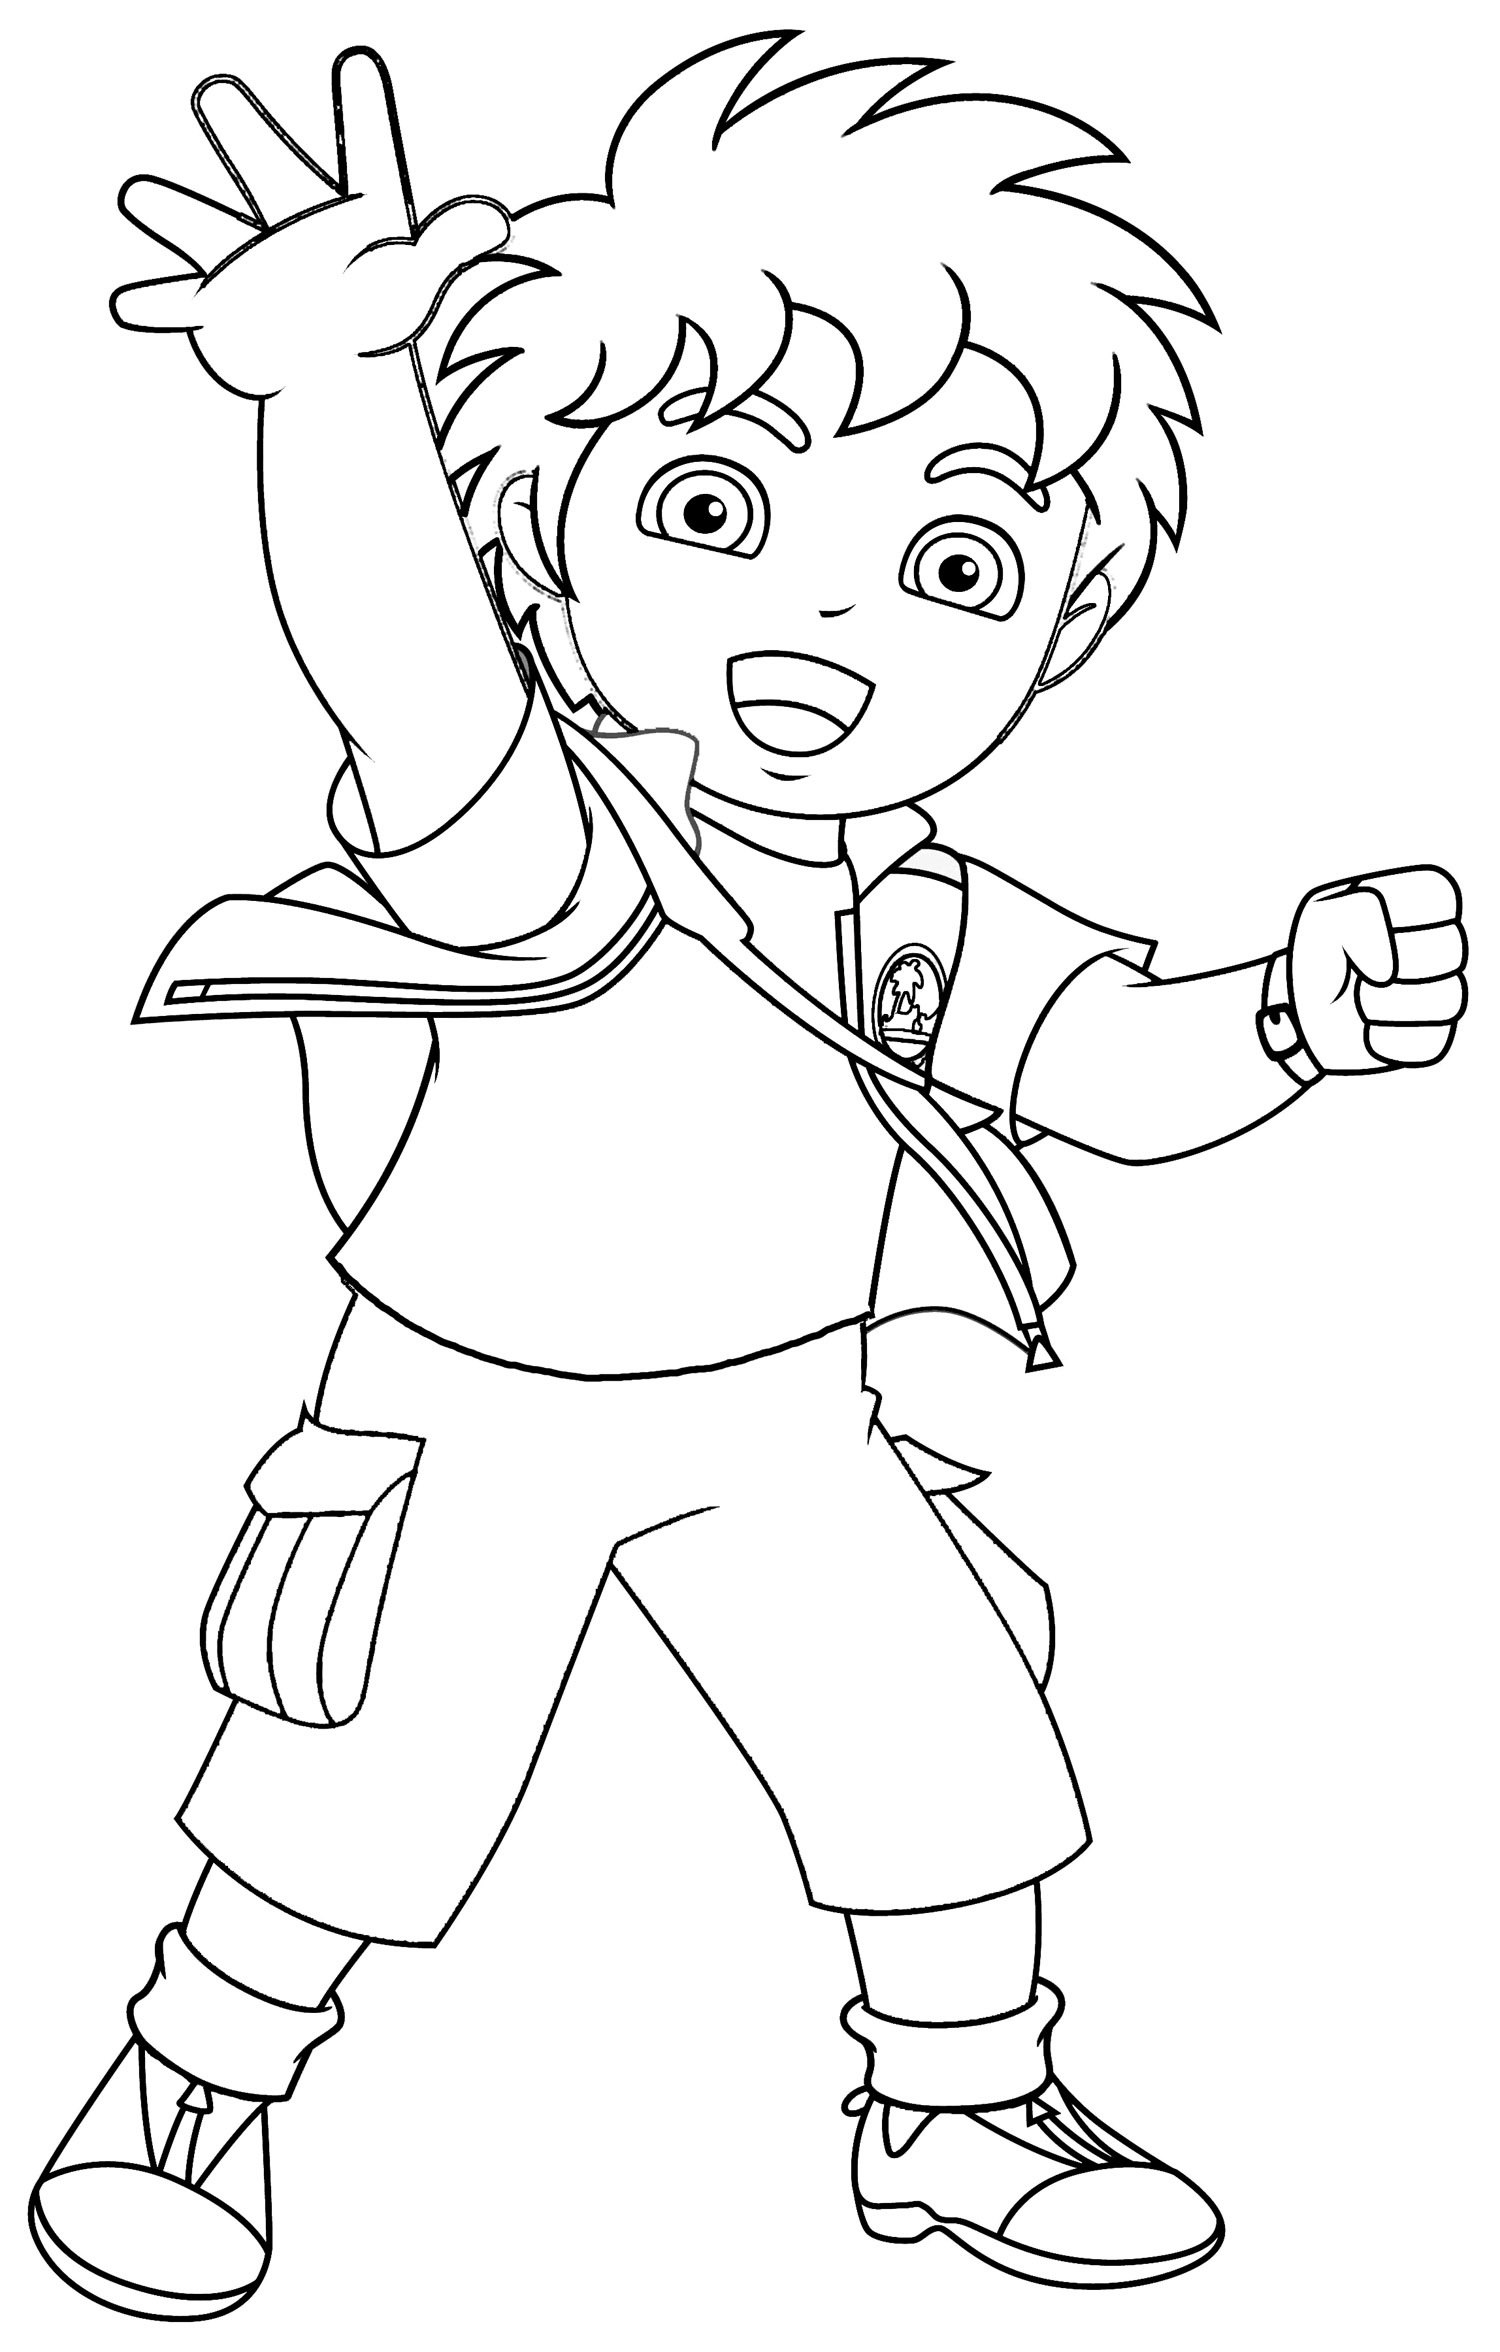 Free Printable Coloring Pages for Children Diego